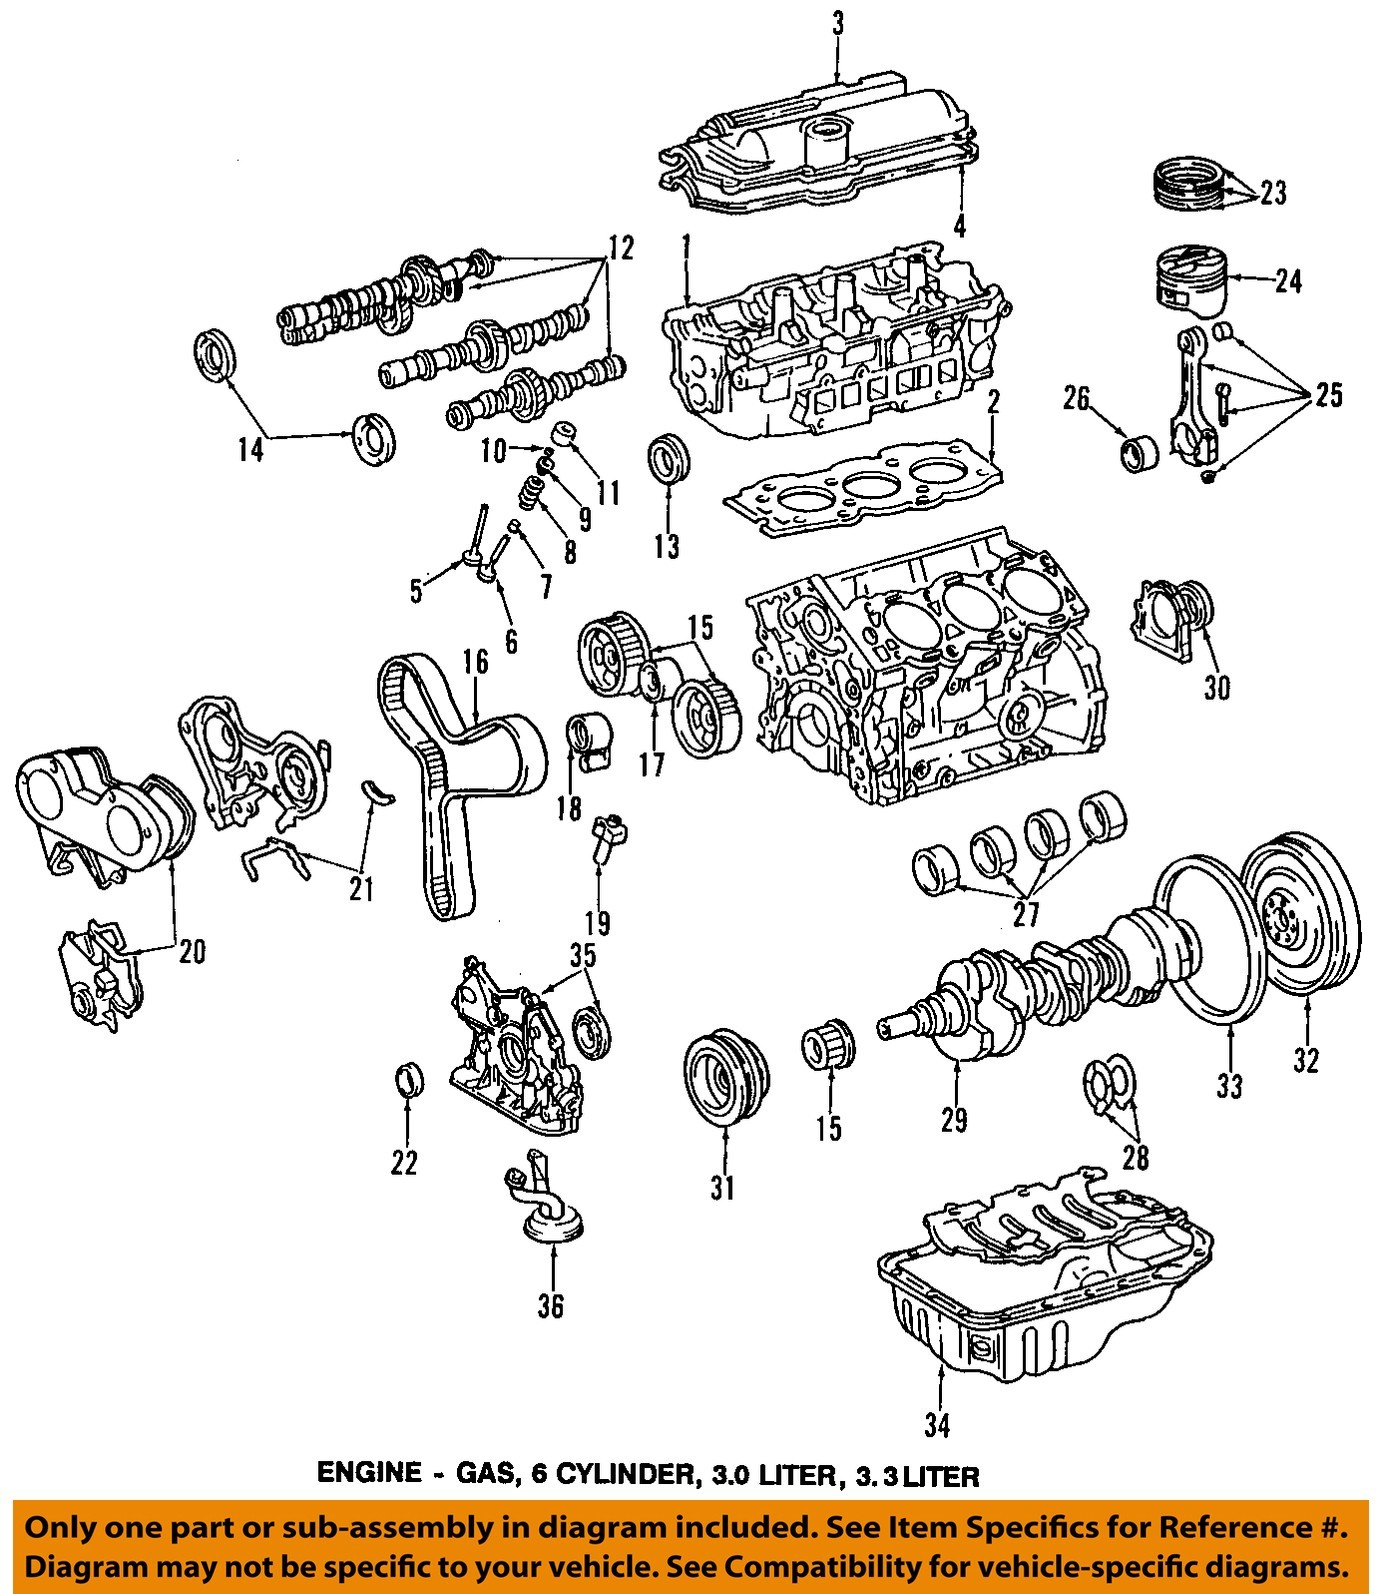 1996 Toyota Camry Engine Diagram Supra 1997 Oem Valve Lifter My